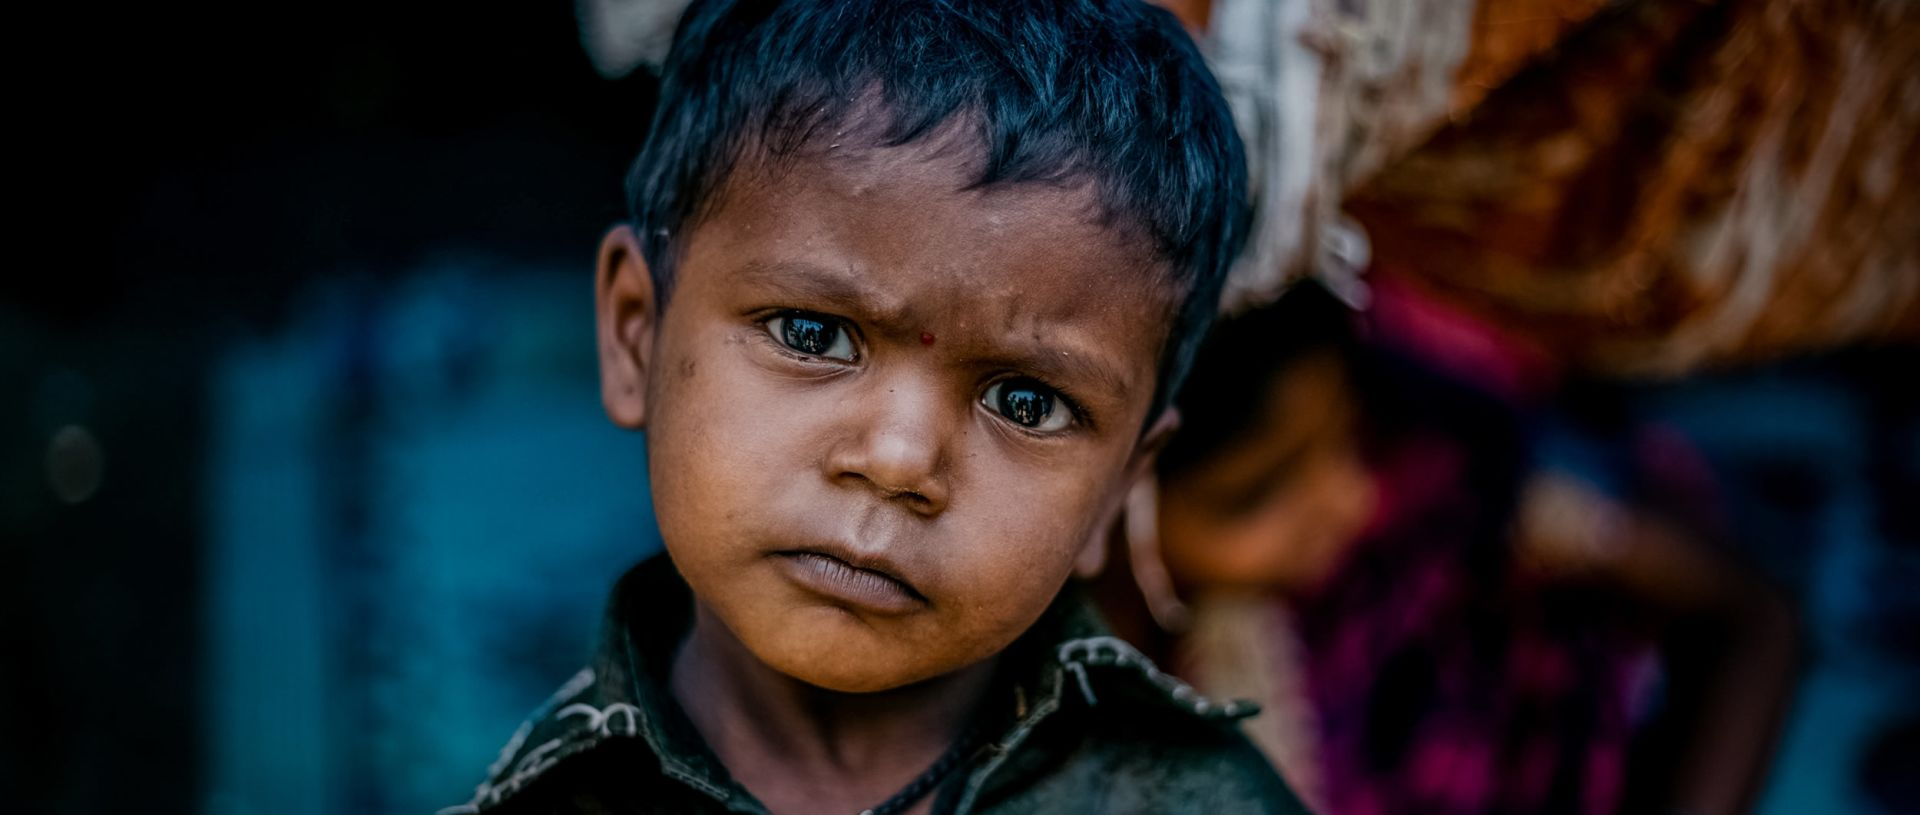 education unlocks the future for children in India banner